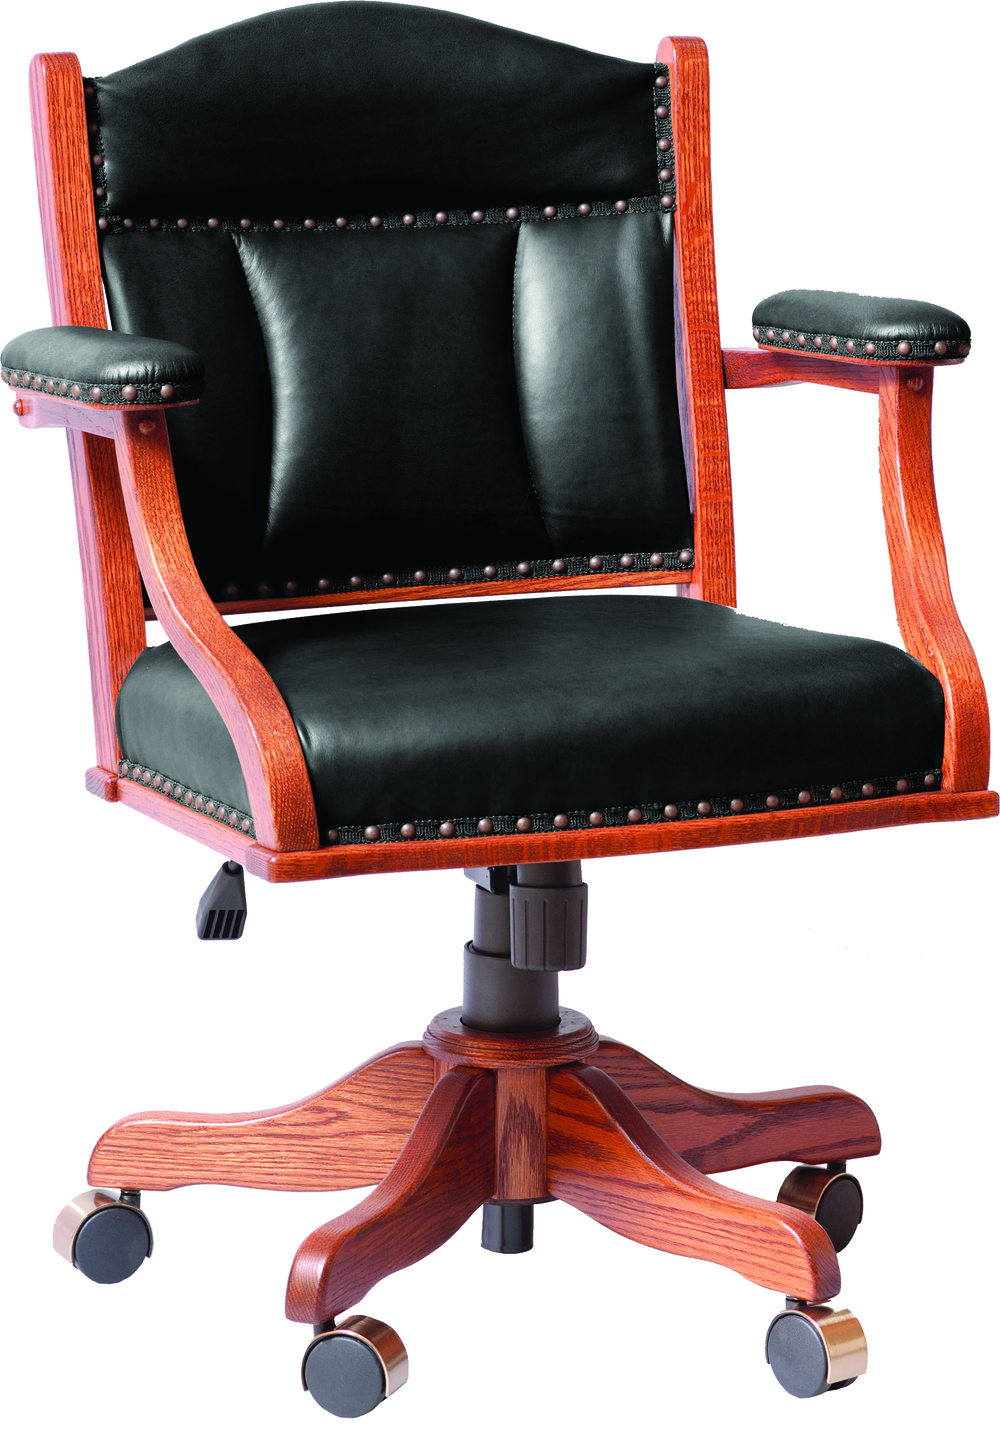 Low Back Desk Chair with gas lift